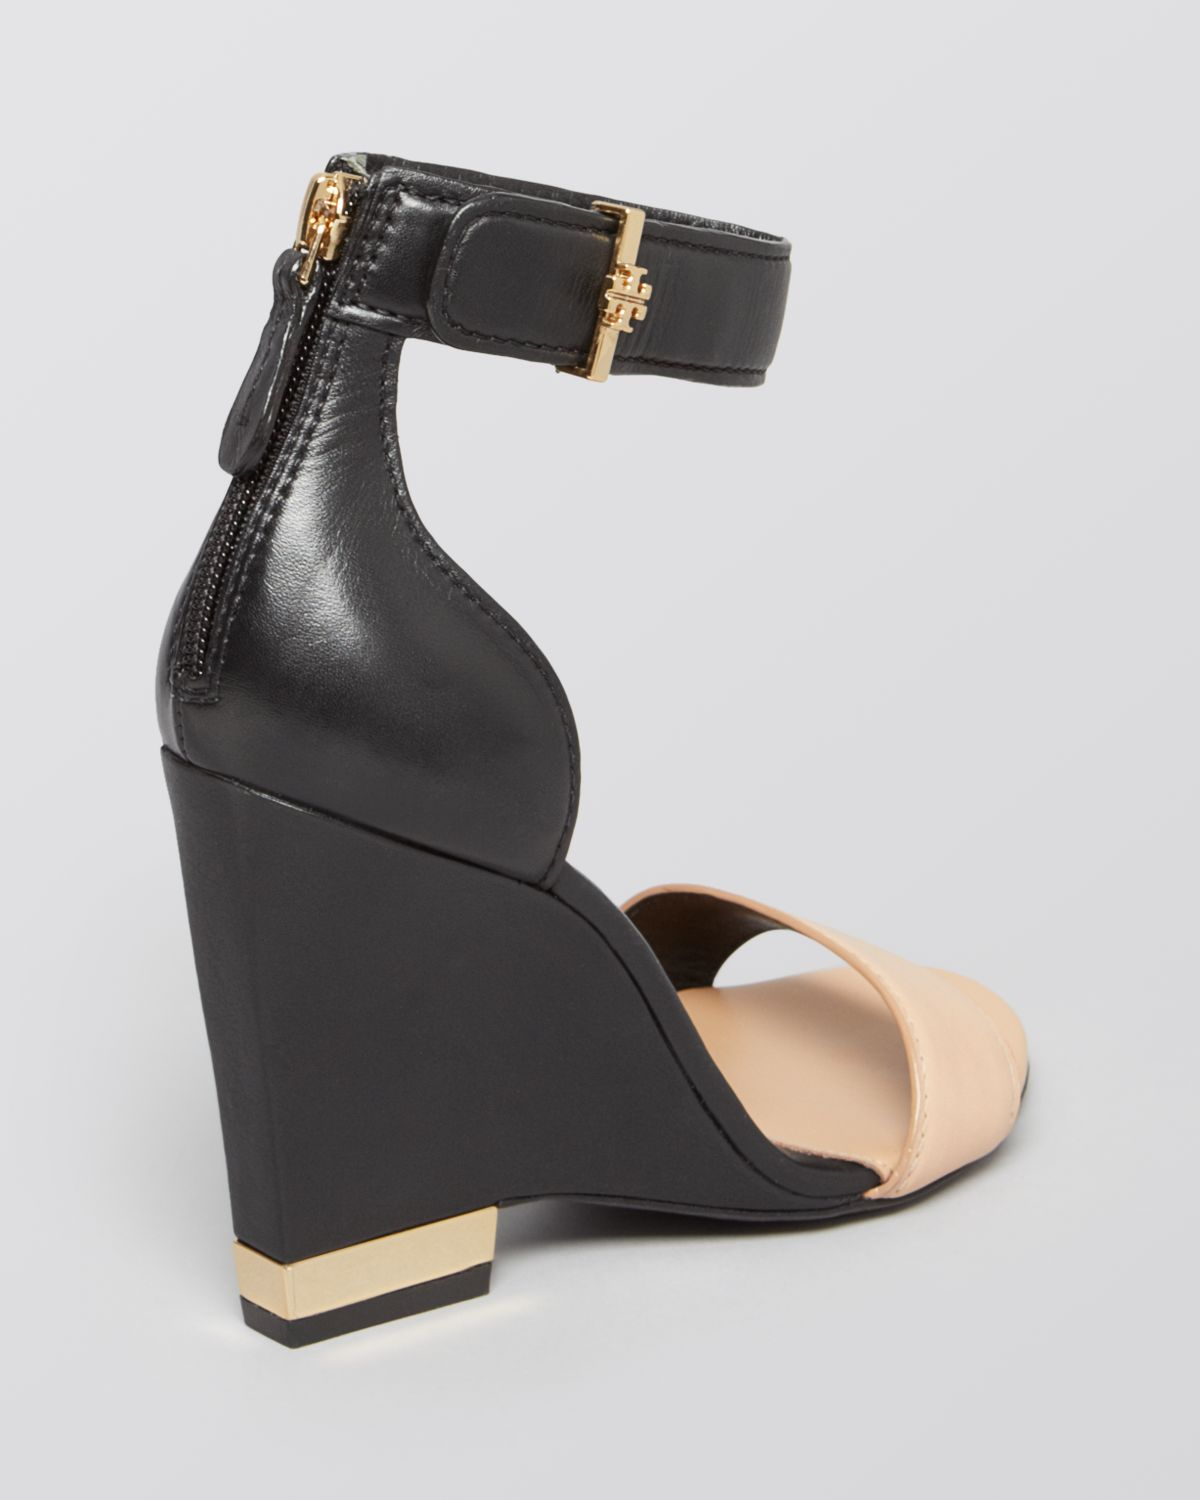 37387a0d6a89e Lyst - Tory Burch Wedge Sandals Carolyn in Black